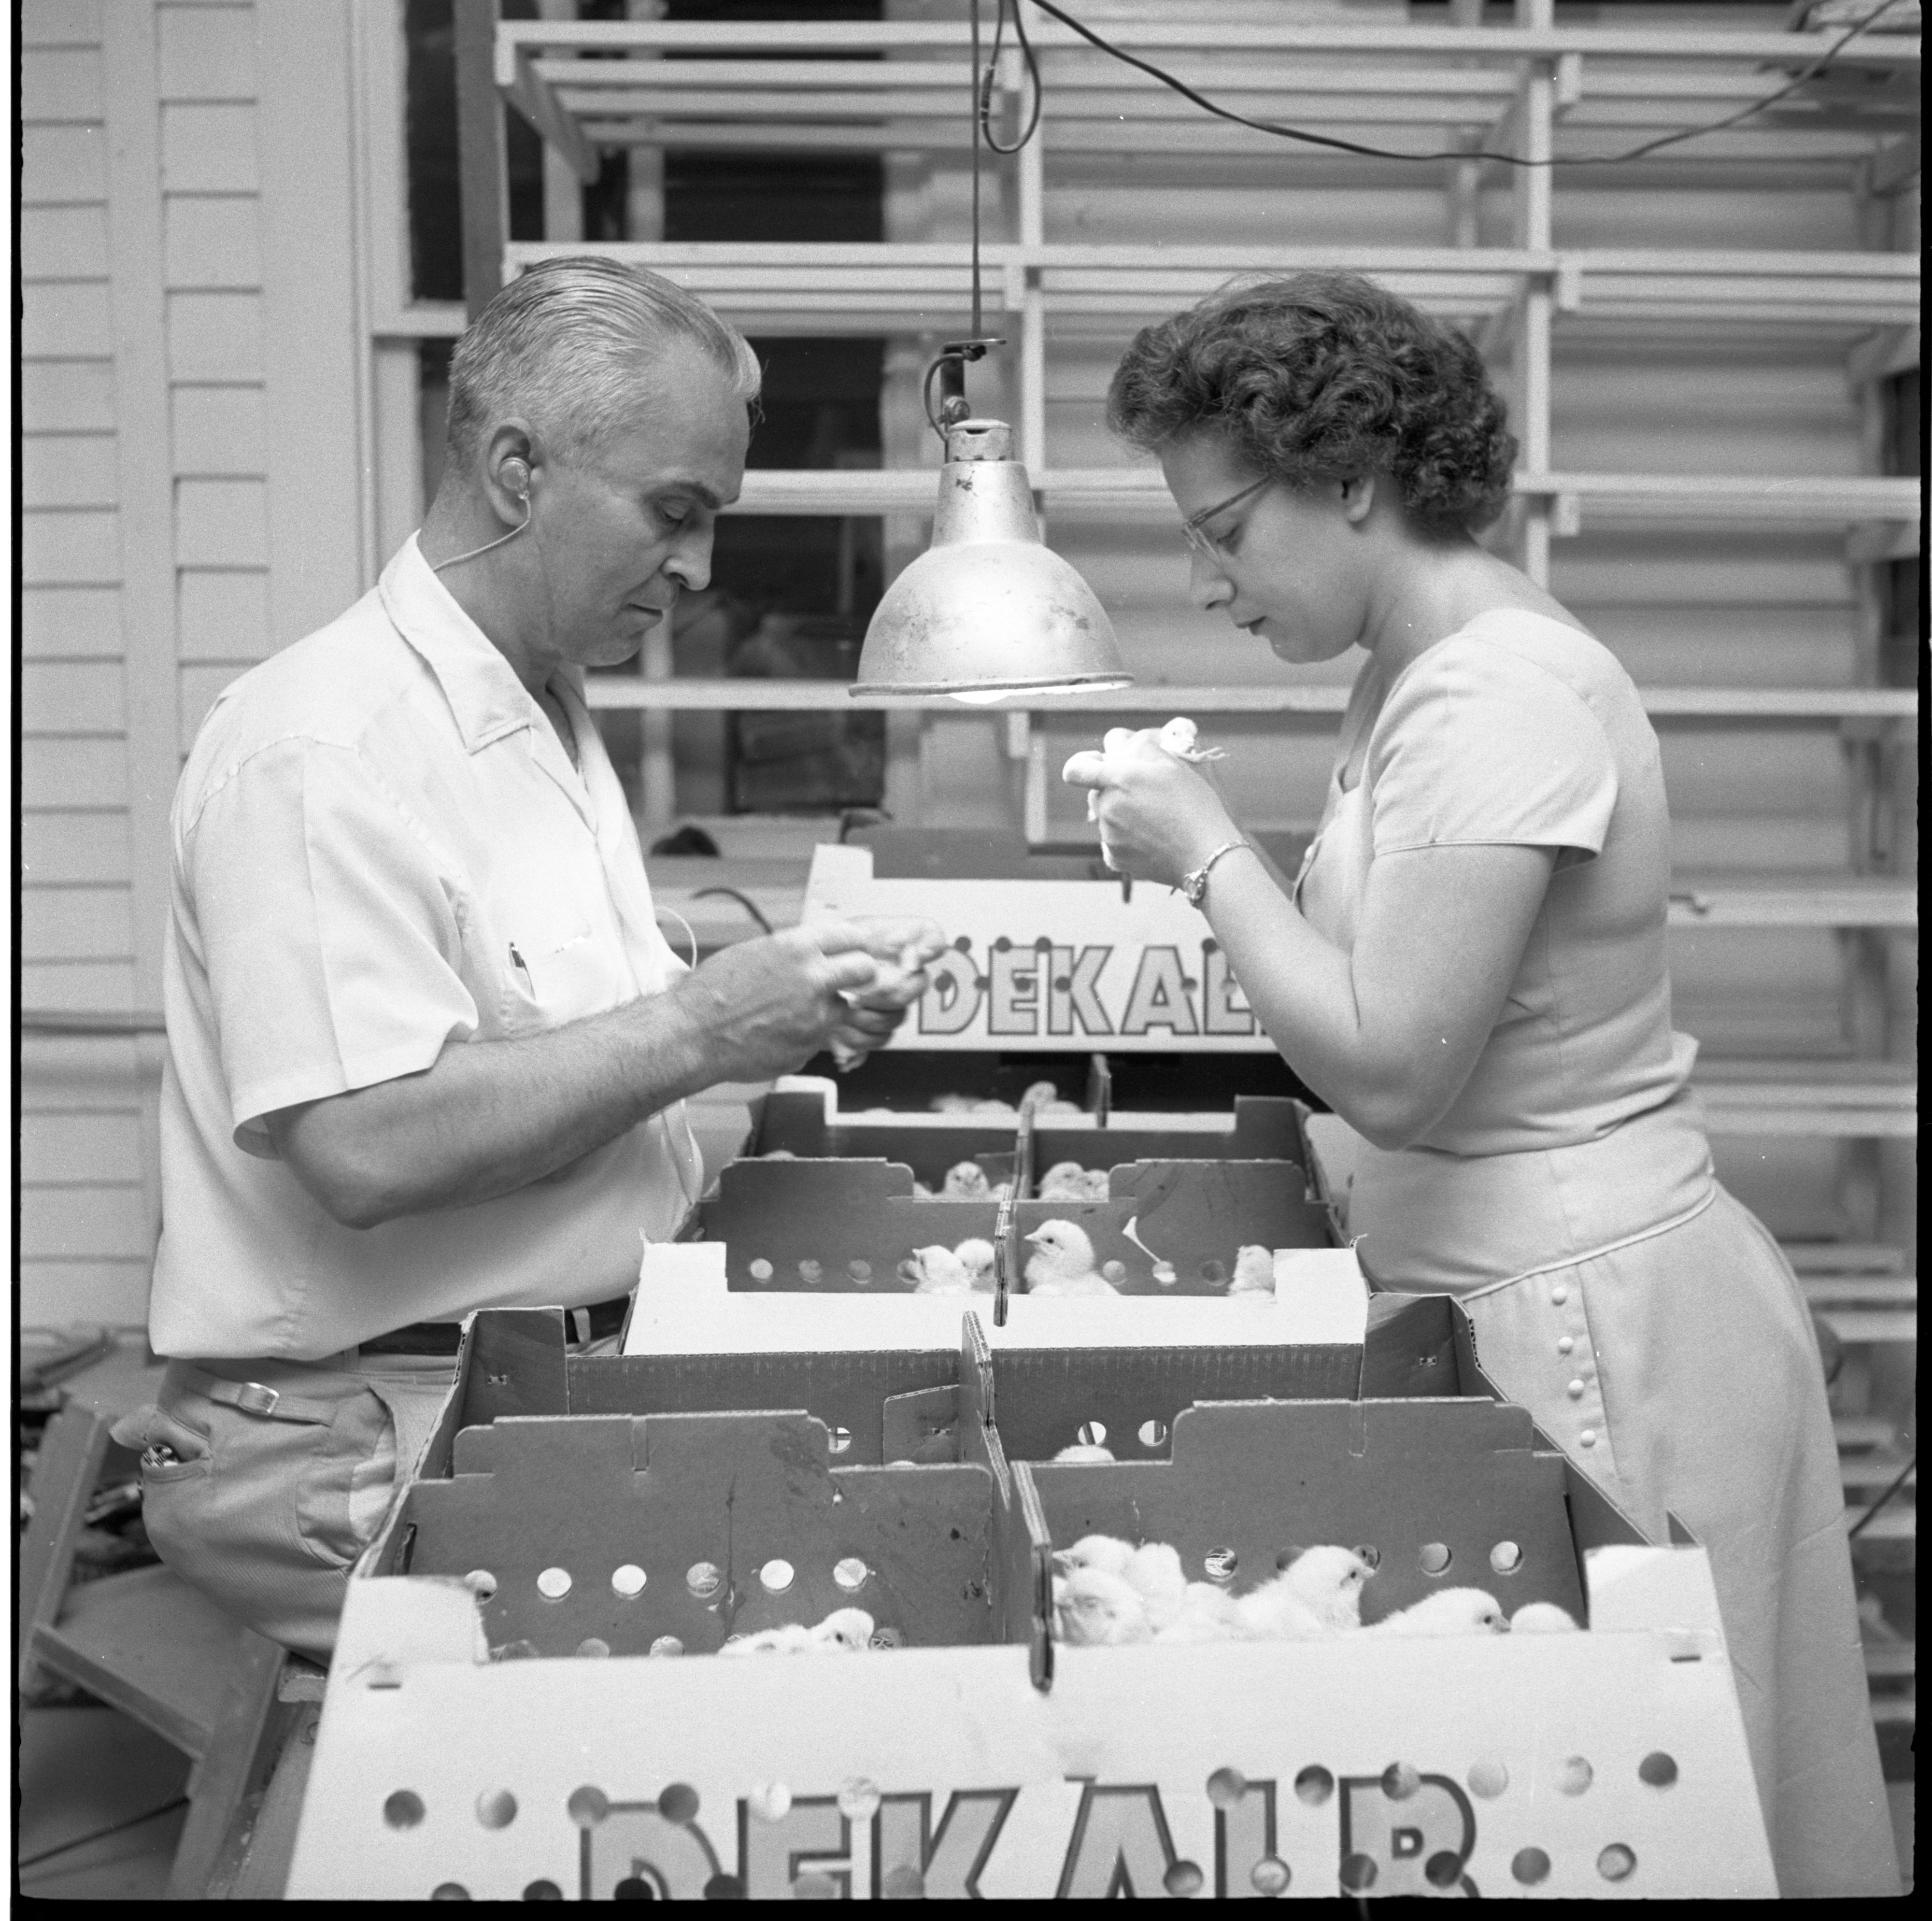 Newly Hatched Chicks Are Inspected At Klager's Hatchery, June 1959 image